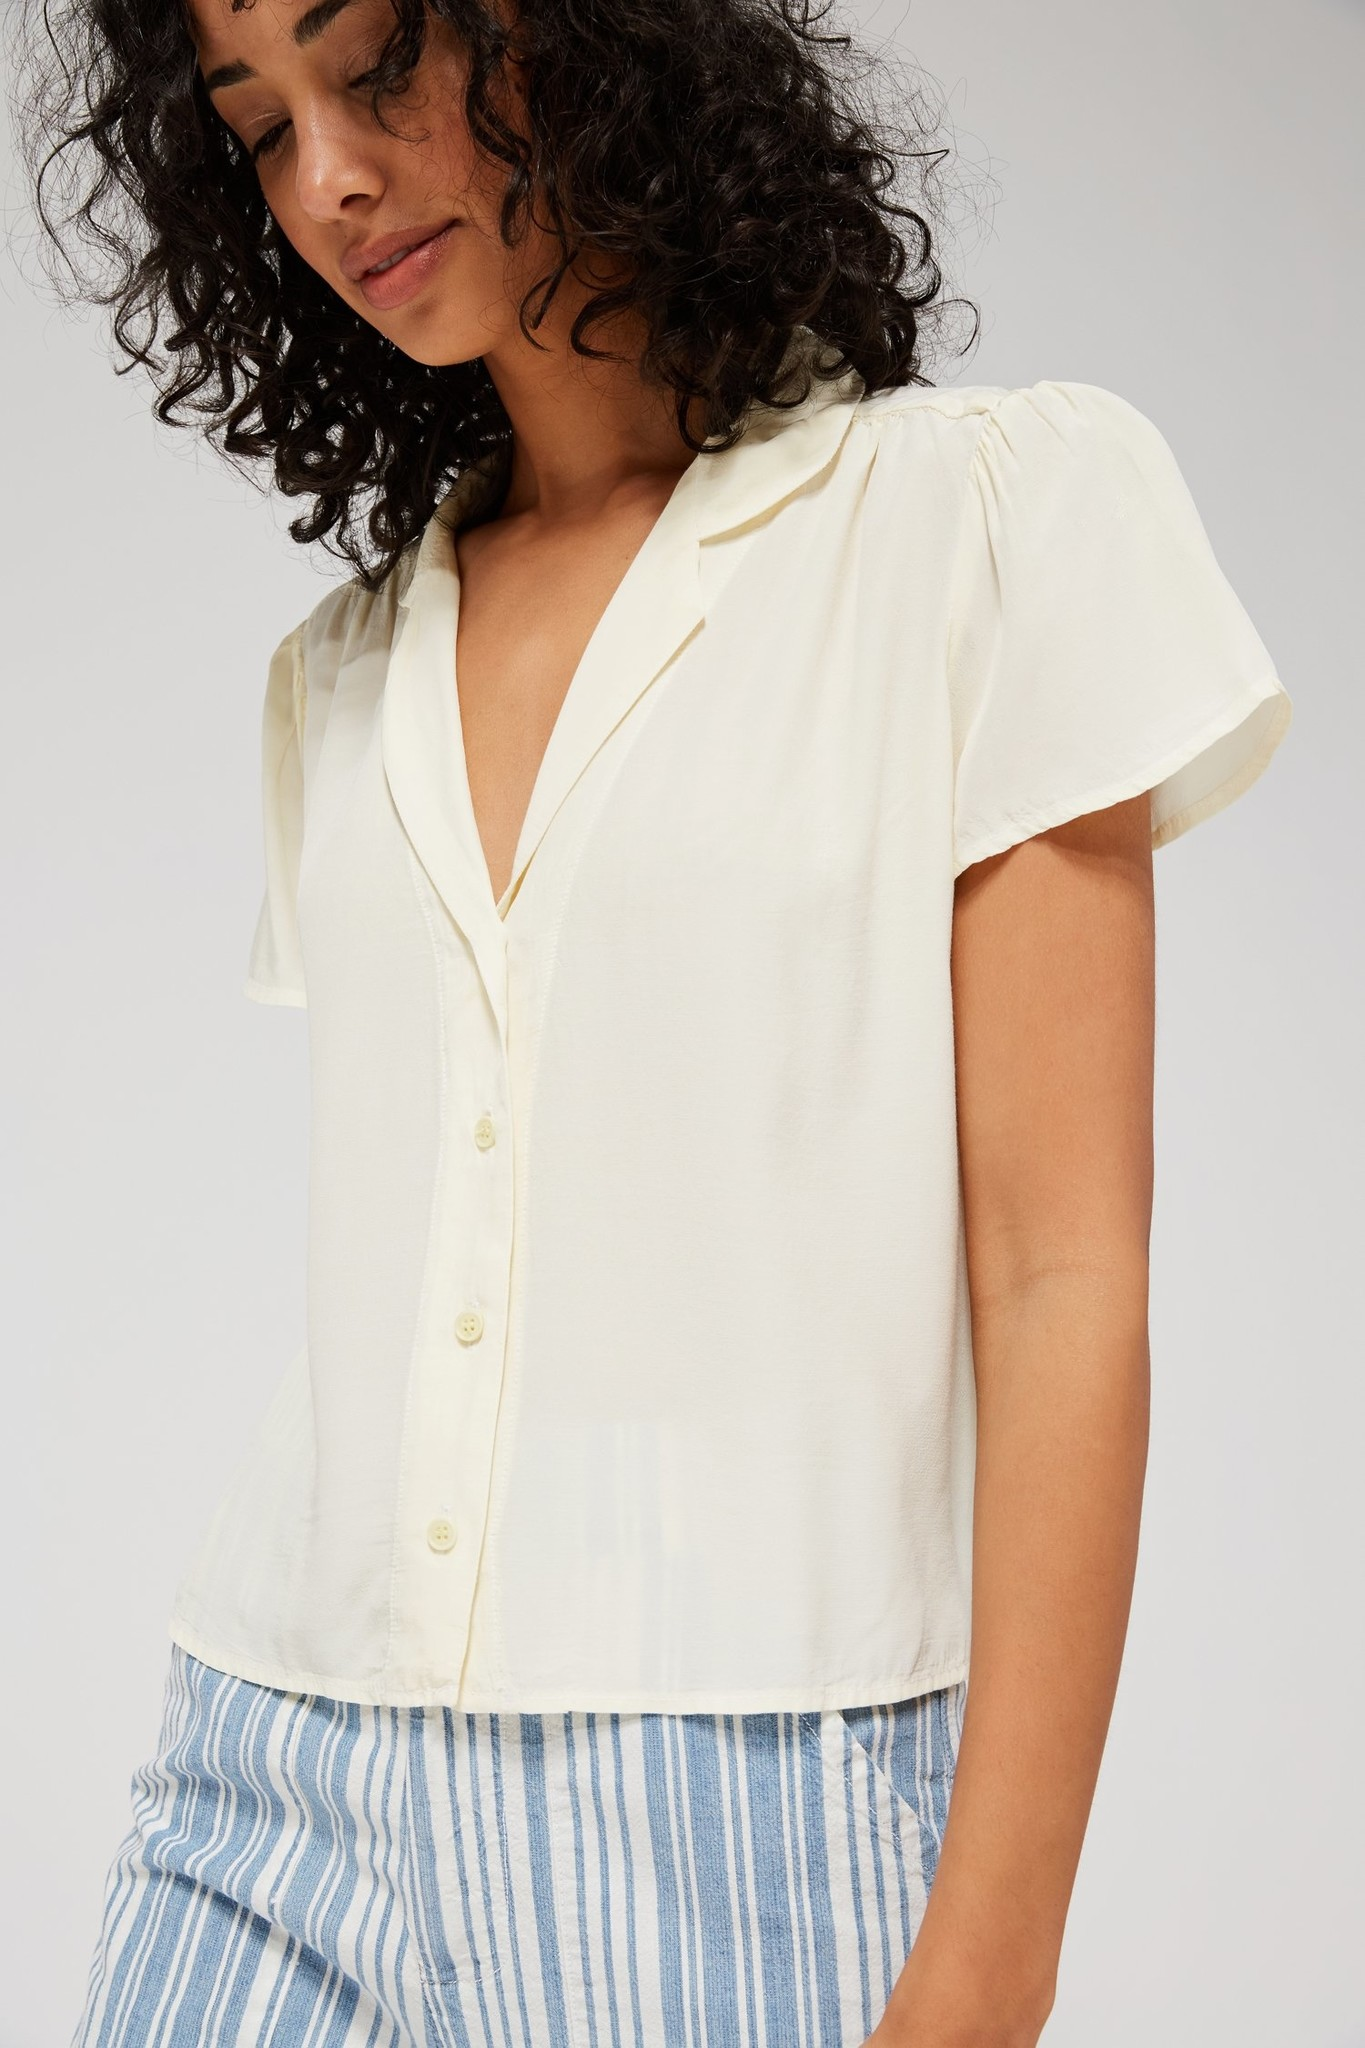 lacausa Lacausa Margot Silky Blouse